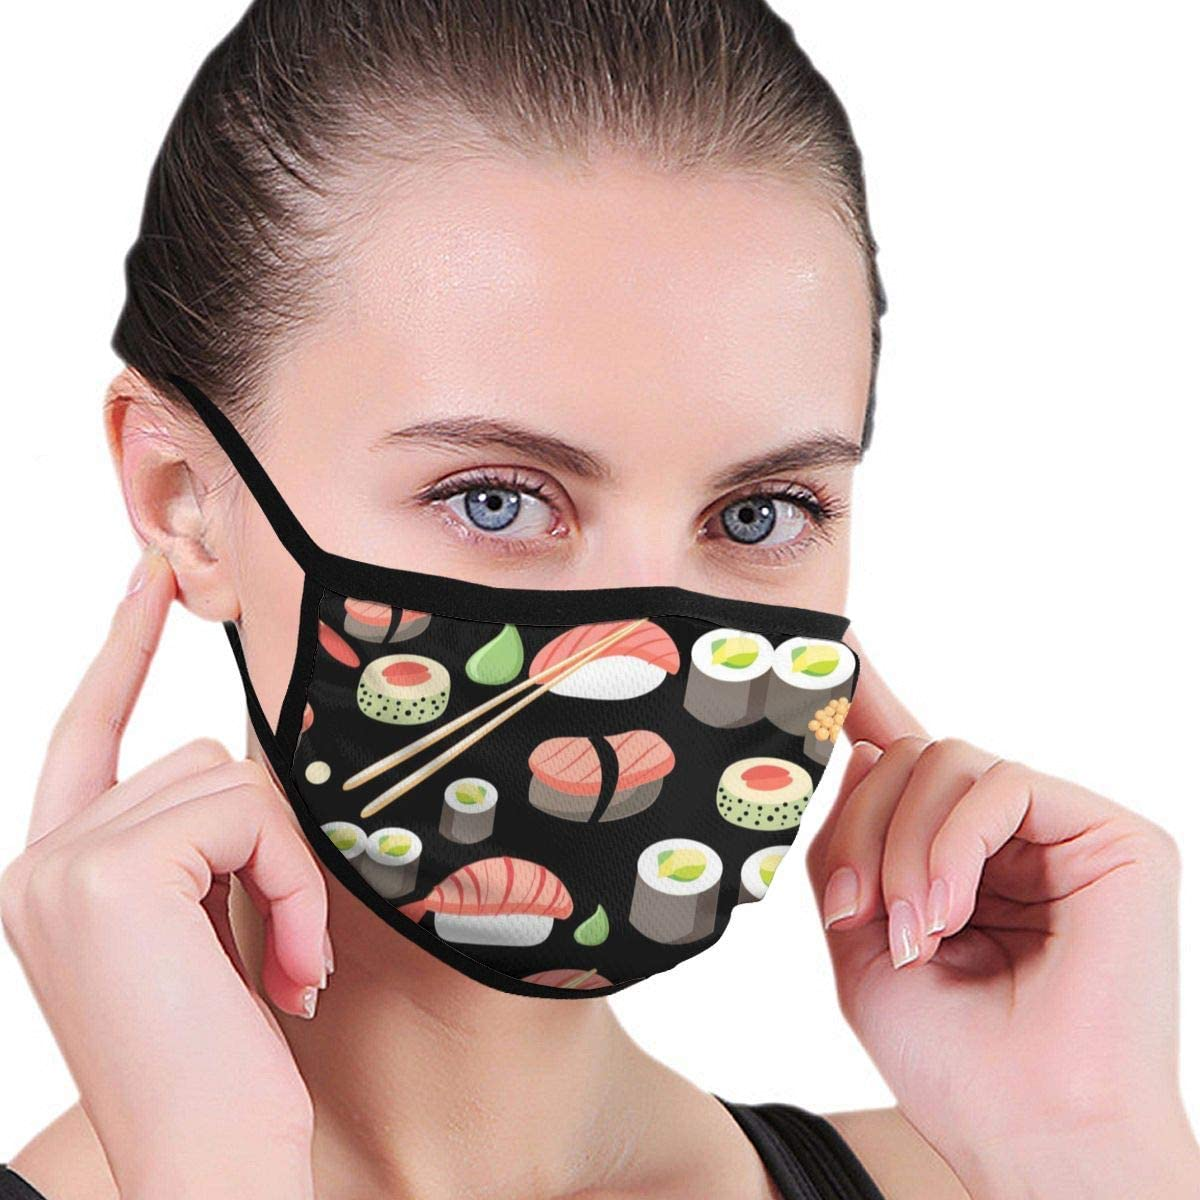 Ladion Day of The Dead and HalloweenMen's Women's Print Warm Washable Reusable Ear Warmer Neck Warmer Construction Mouth Wear